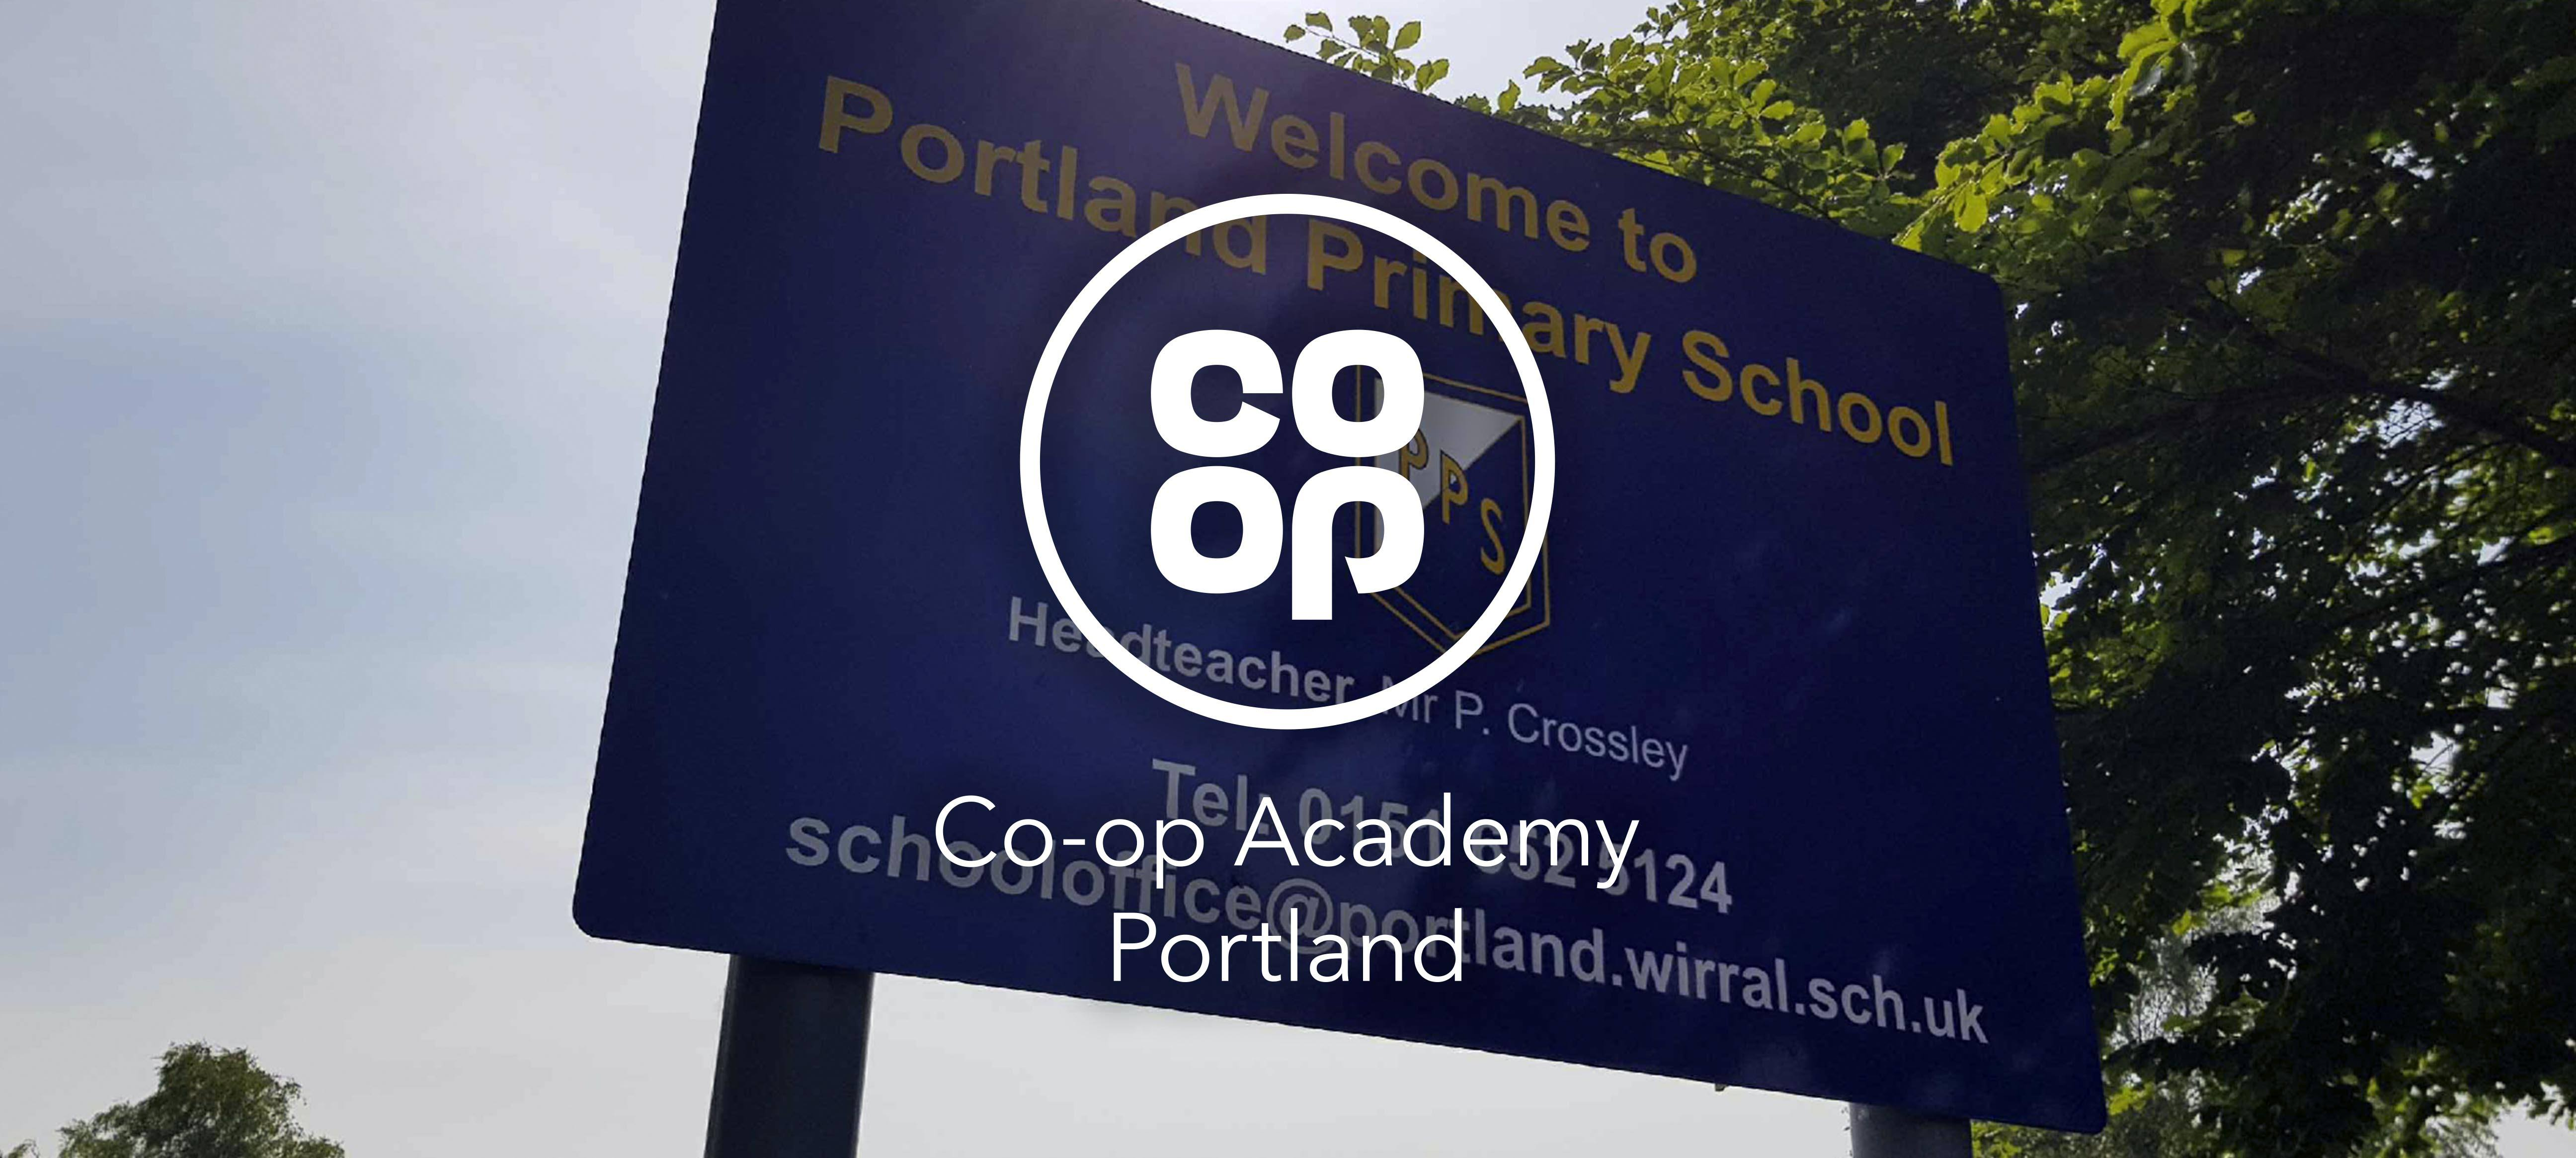 Portland Primary School becomes first Merseyside school to join Co-op Academies Trust